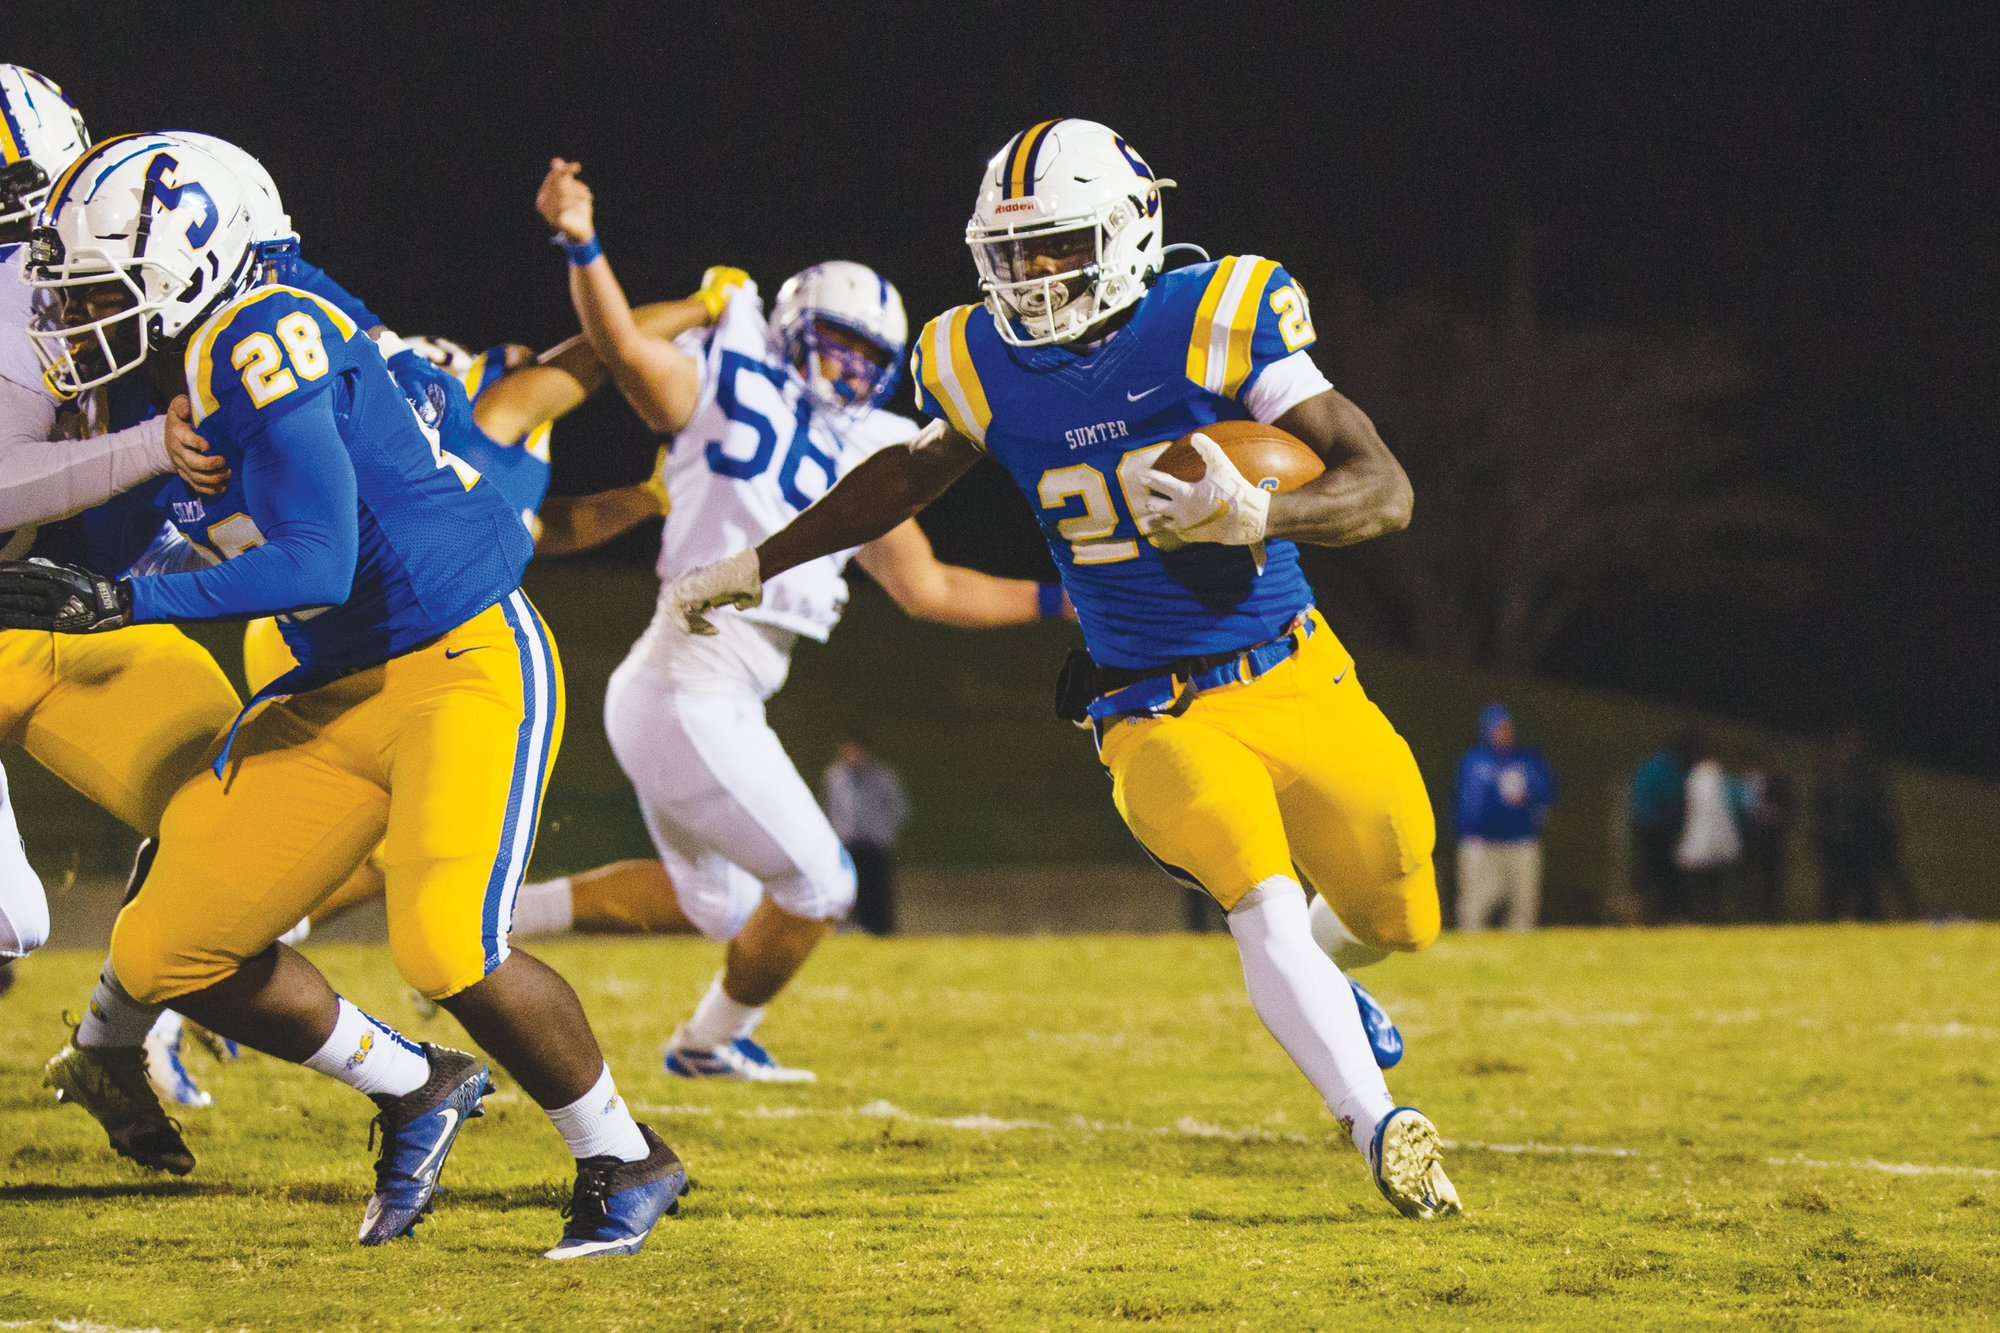 Sumter running back Nathan Harris-Waynick (26) and the Gamecocks will look to extend their undefeated season when they host Gaffney at Memorial Stadium's Freddie Solomon Field on Friday.